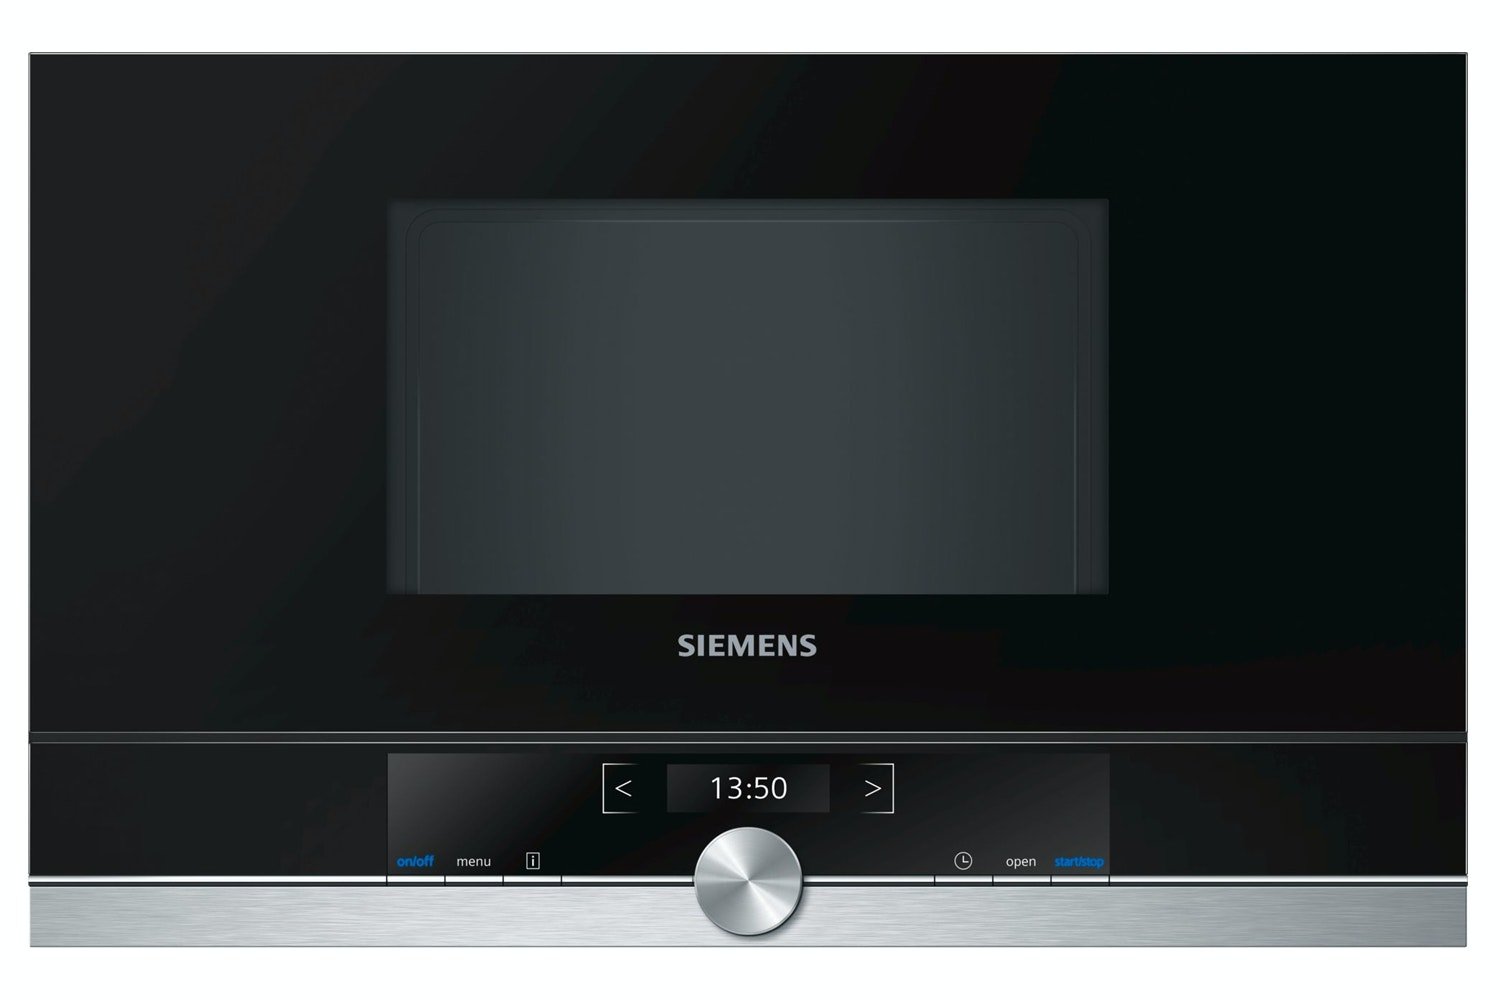 Siemens 21L 900W IQ700 Built In Microwave | BF634LGS1B | Black